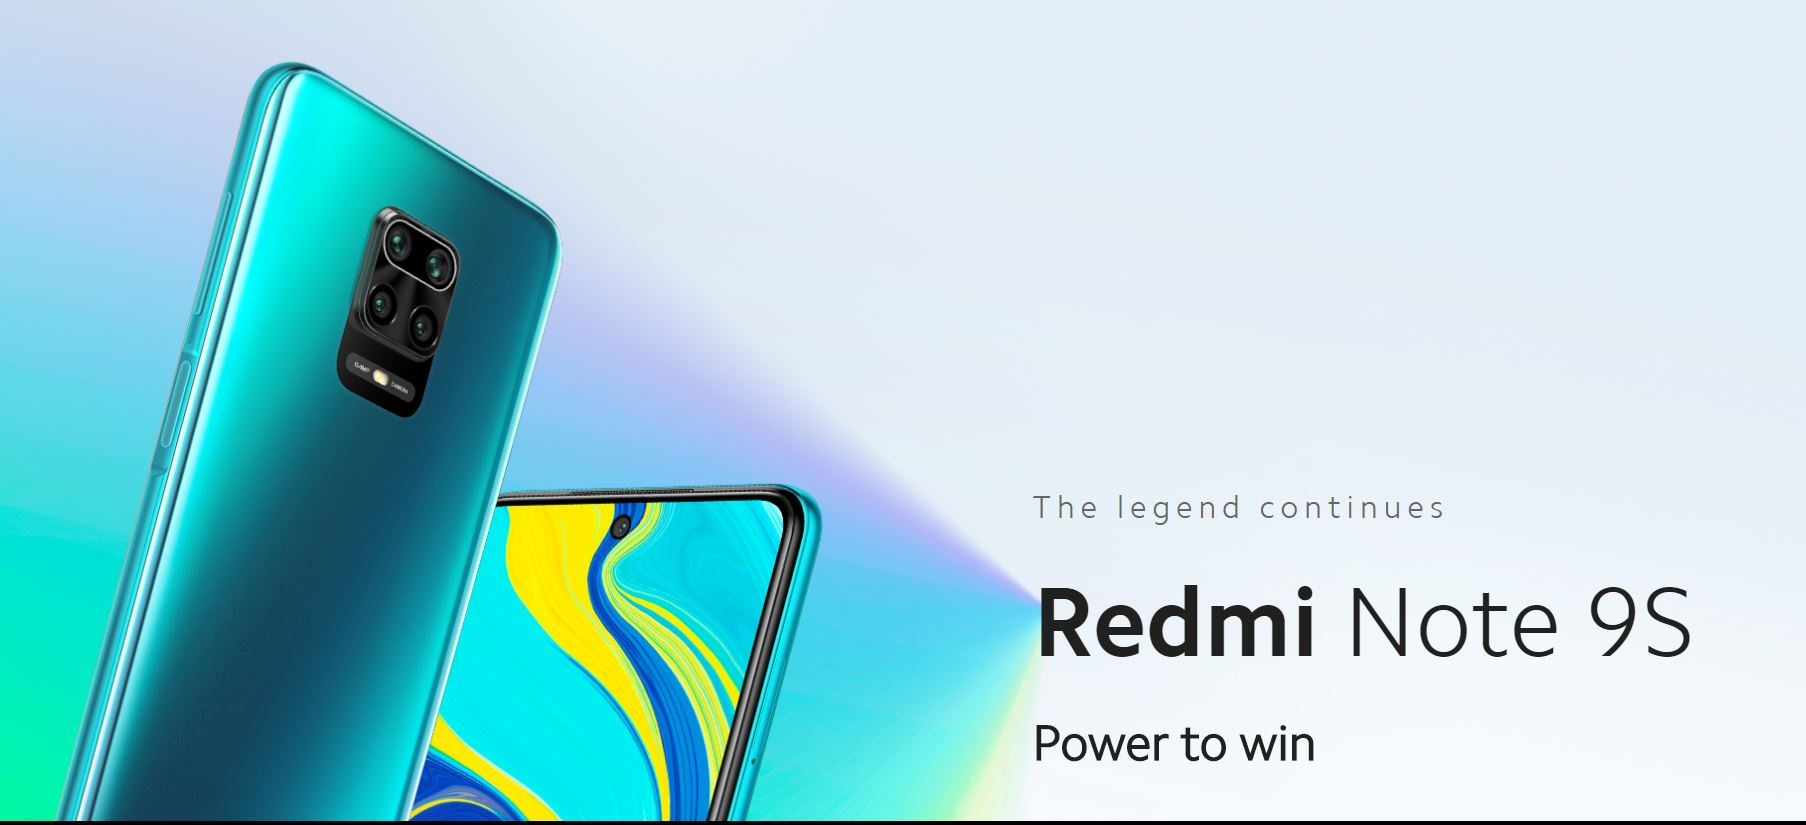 redmi-note-9s-official-price-specs-release-date-availability-philippines-2-image-1